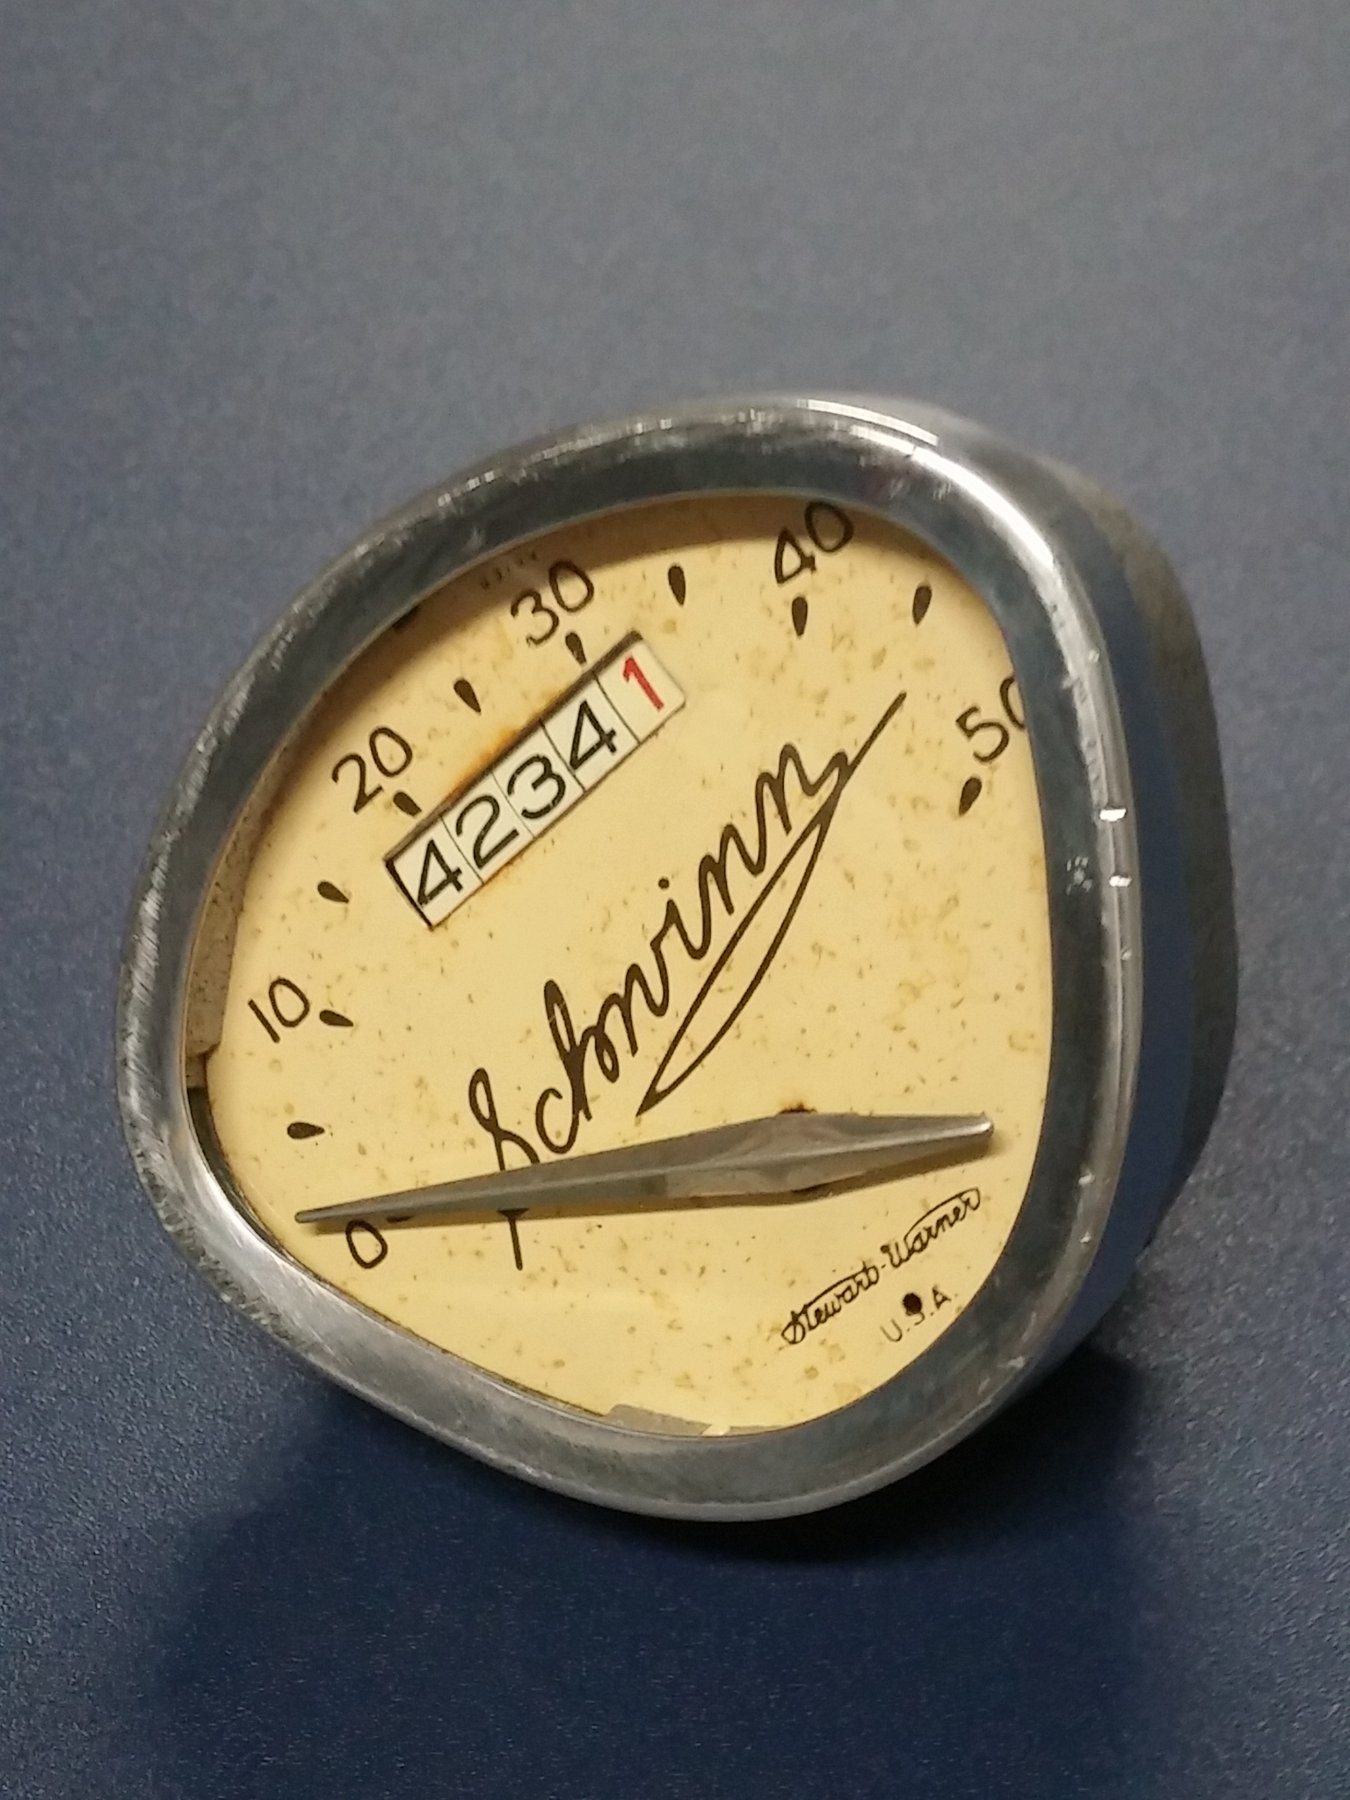 Prewar Schwinn Autocycle Speedometer The Classic And Antique